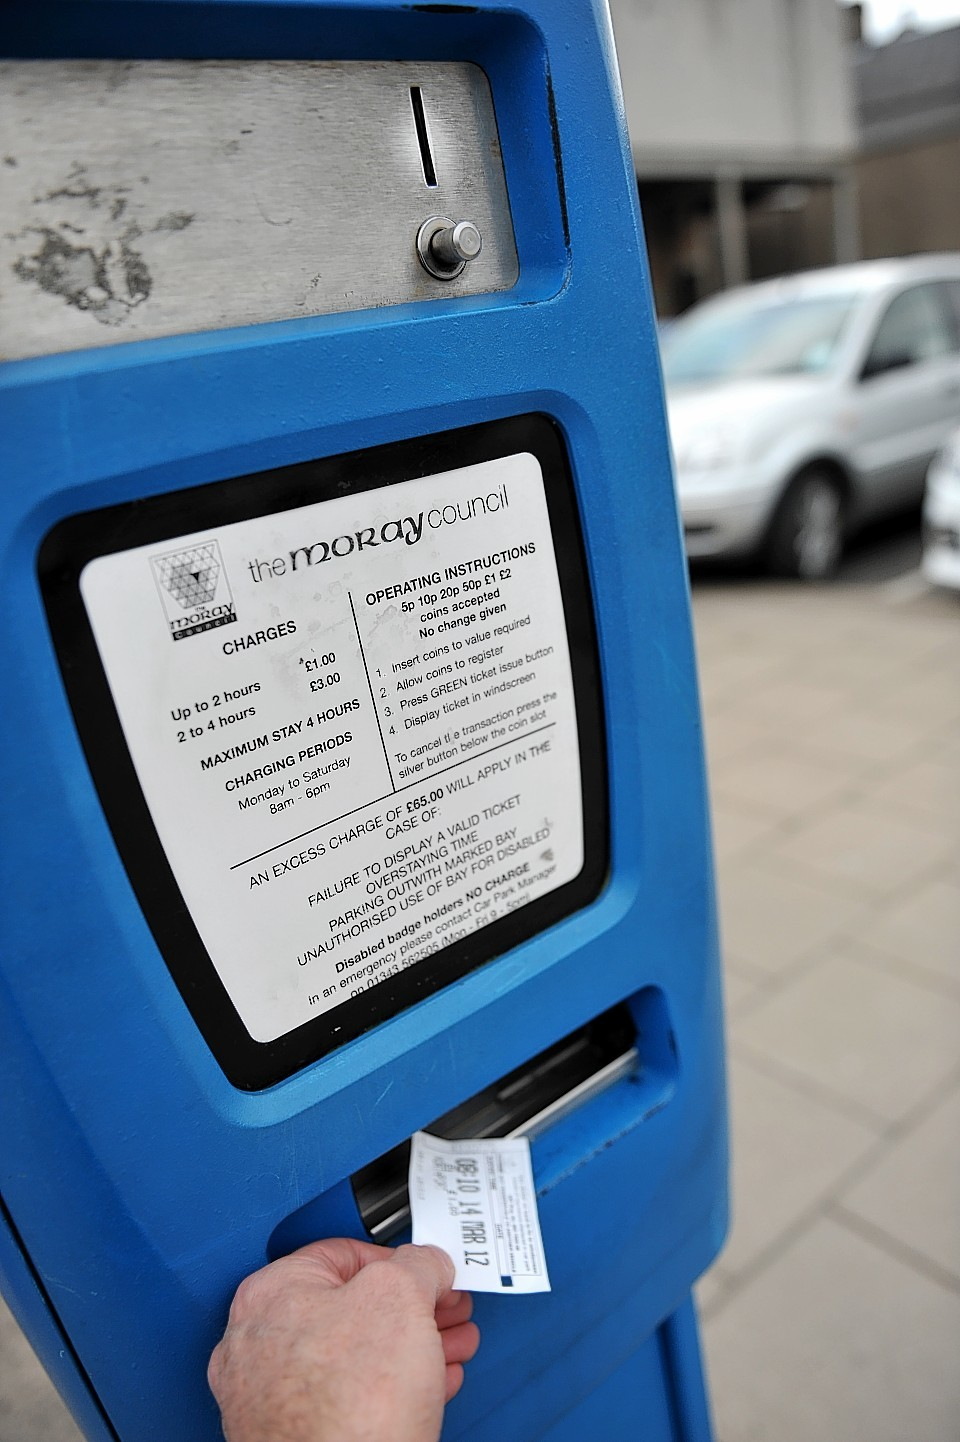 Calls have been made for parking charges to be scrapped